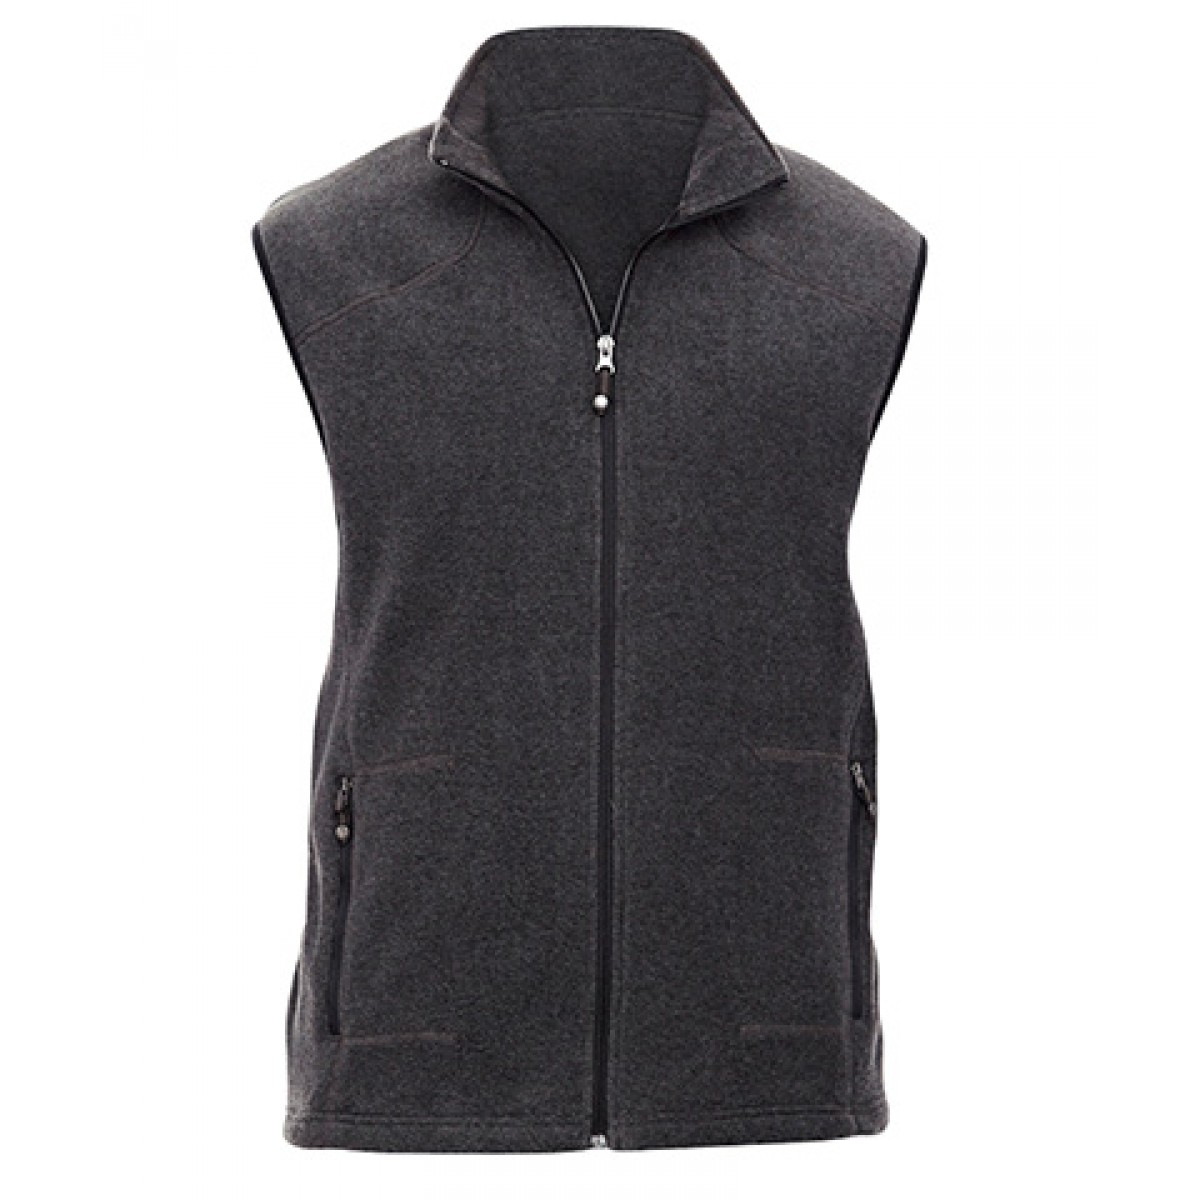 Men's Voyage Fleece Vest-Gray -5XL